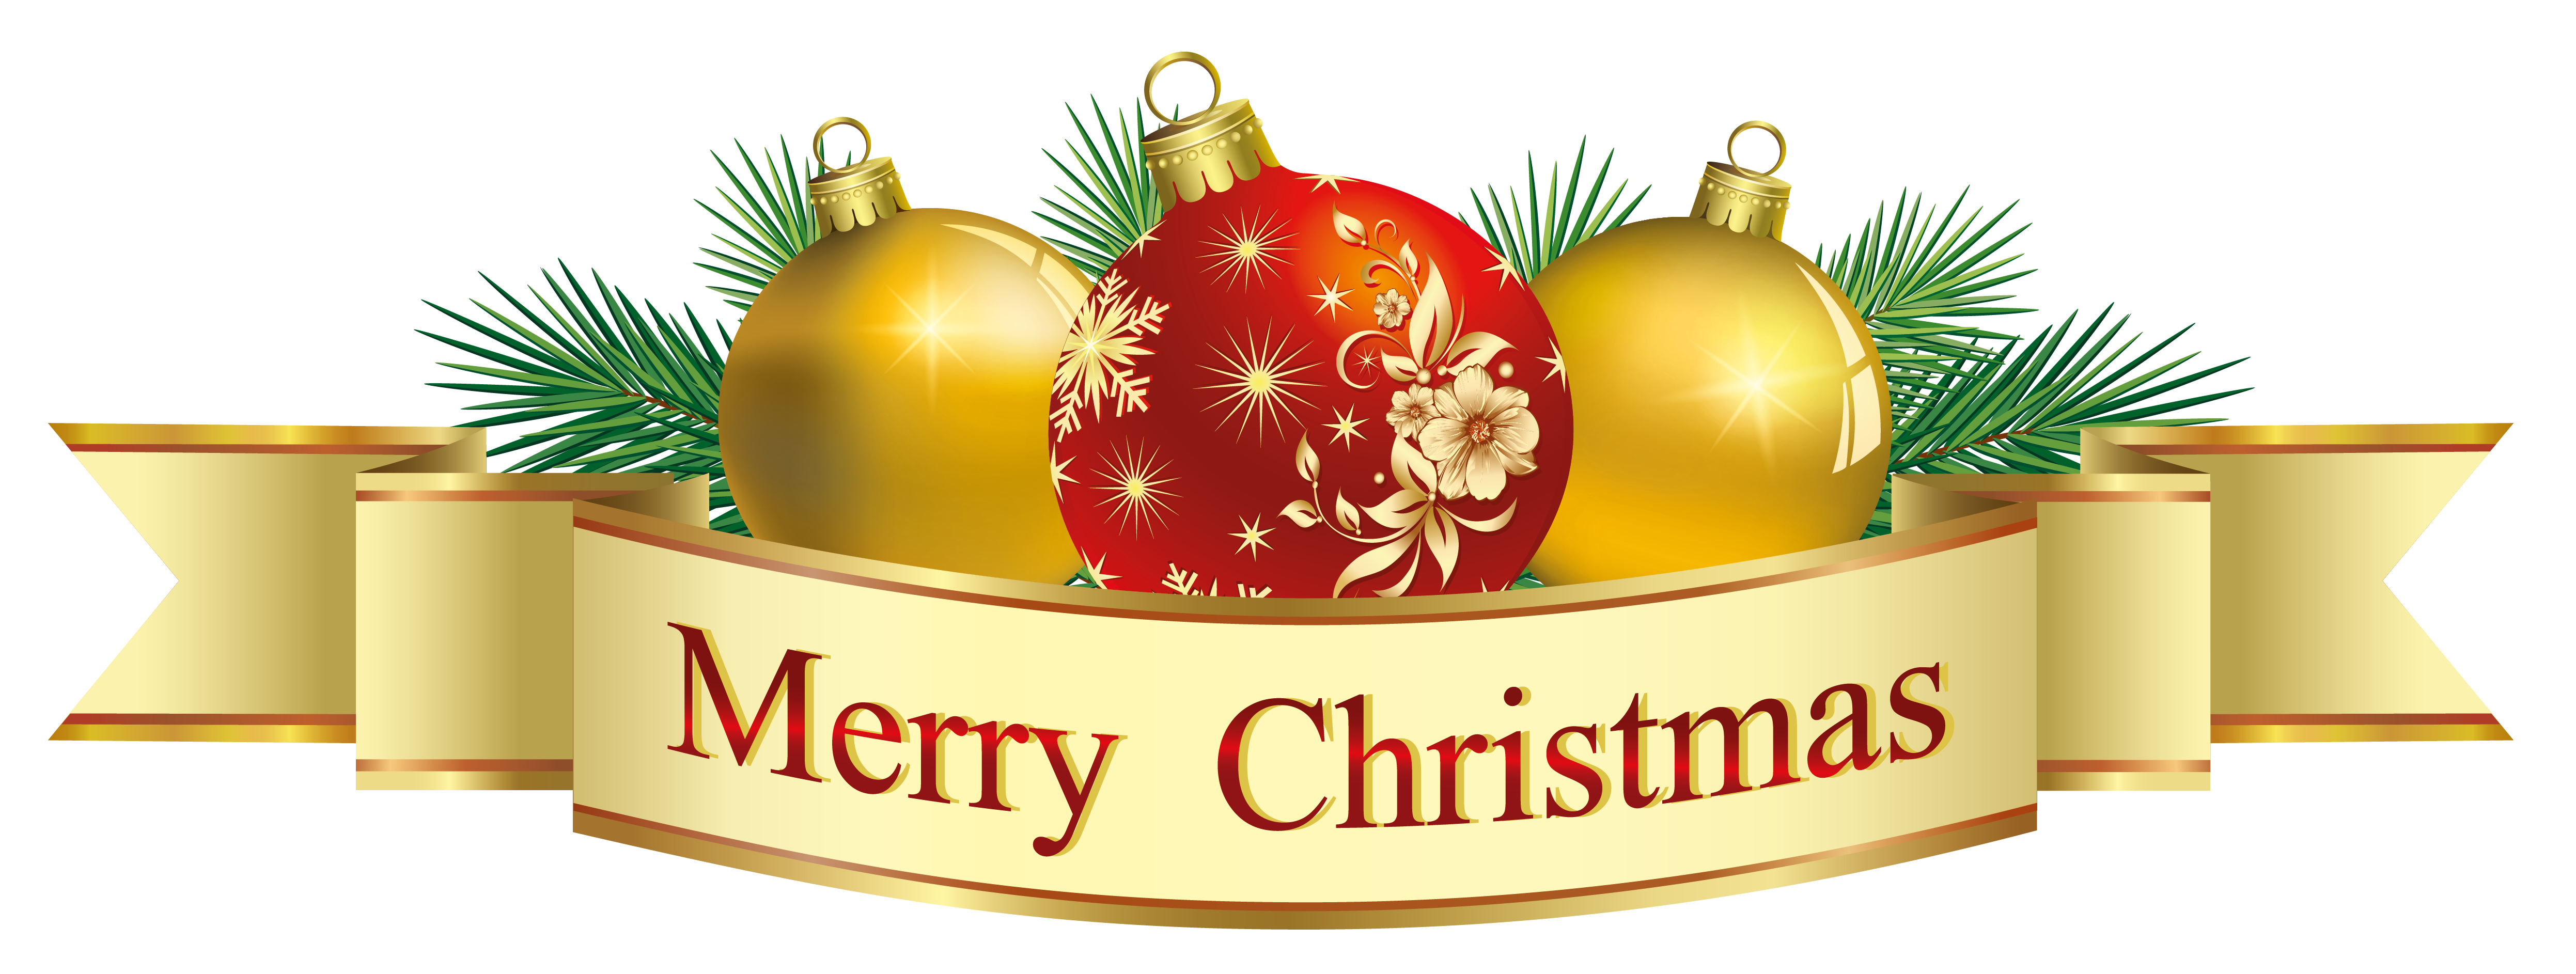 Merry christmas images free clipart clip art freeuse stock Merry Christmas Clipart for print – Free Clipart Images clip art freeuse stock